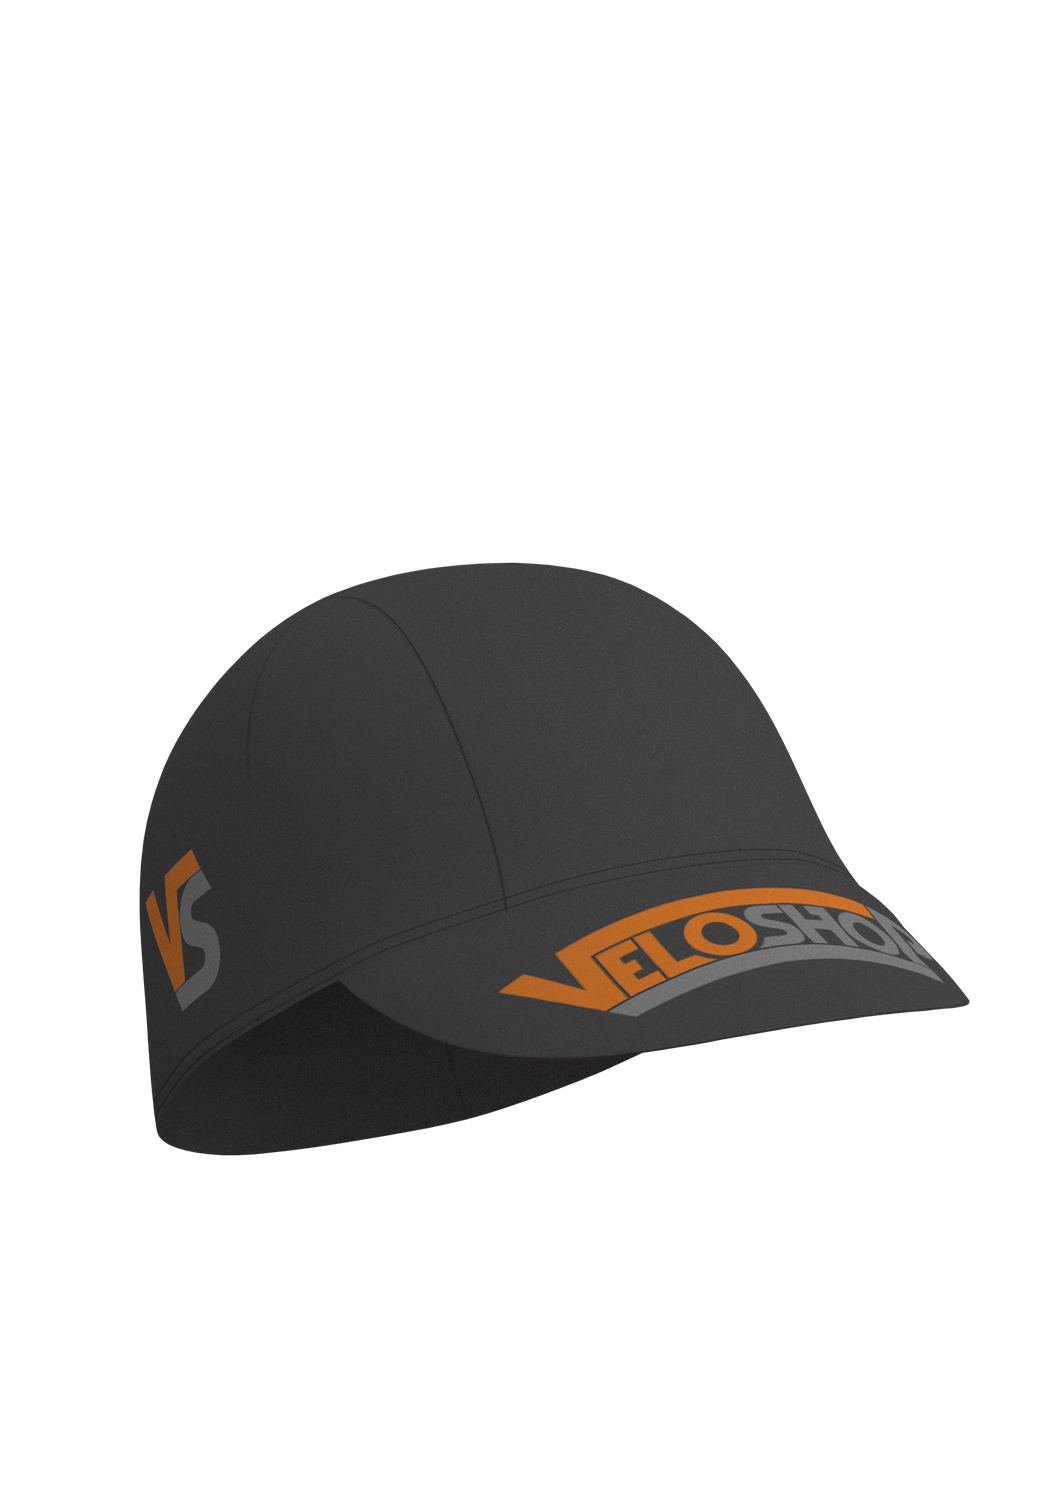 Veloshop Cotton Cap By Ale